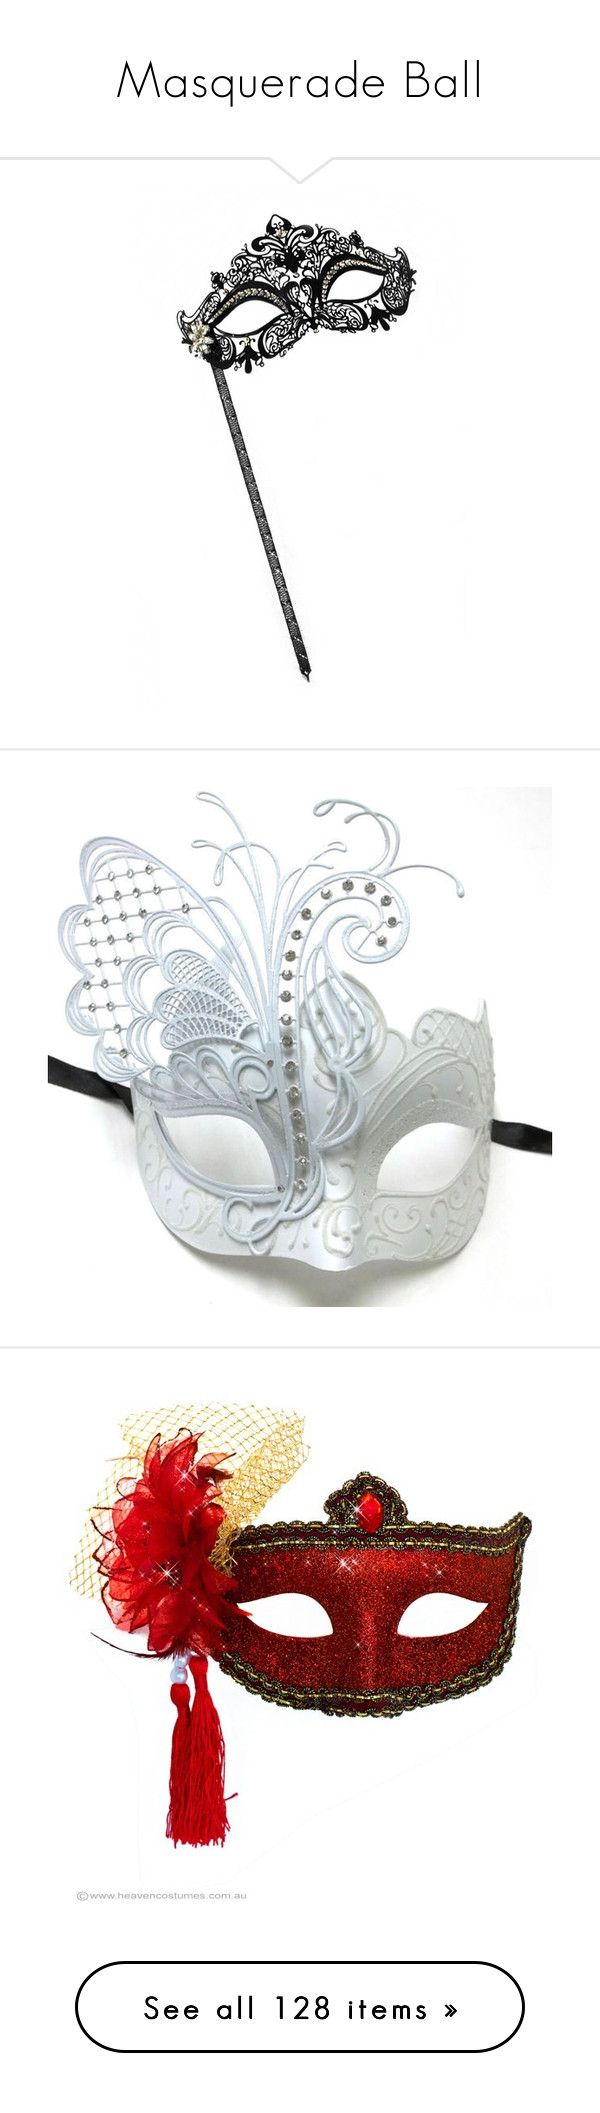 """""""Masquerade Ball"""" by sedf2 ❤ liked on Polyvore featuring mask, costumes, masks, accessories, masquerade halloween costume, elegant halloween costumes, party halloween costumes, elegant costumes, fancy costumes and angel halloween costume"""